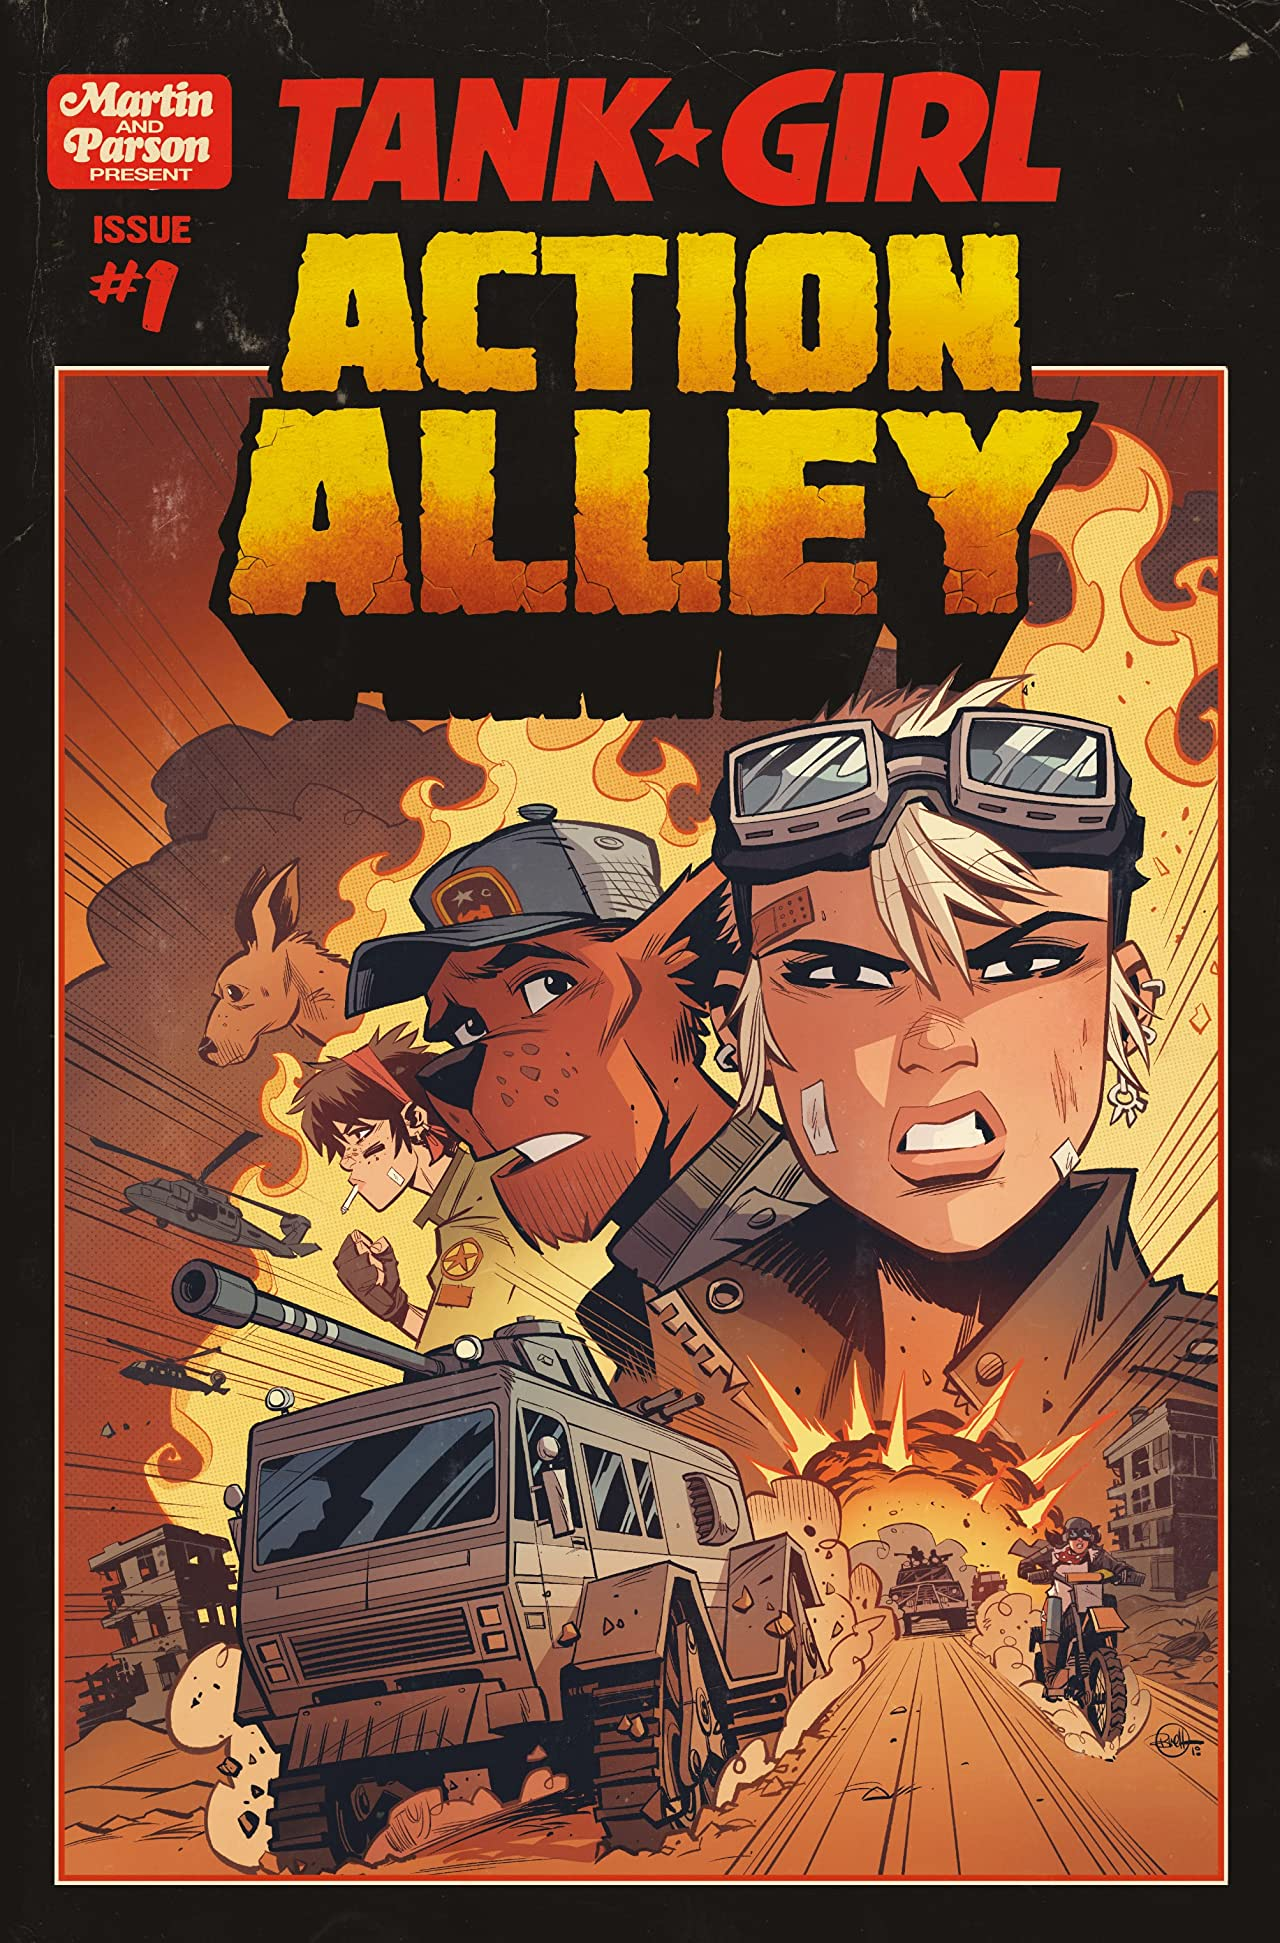 Tank Girl #1: Action Alley